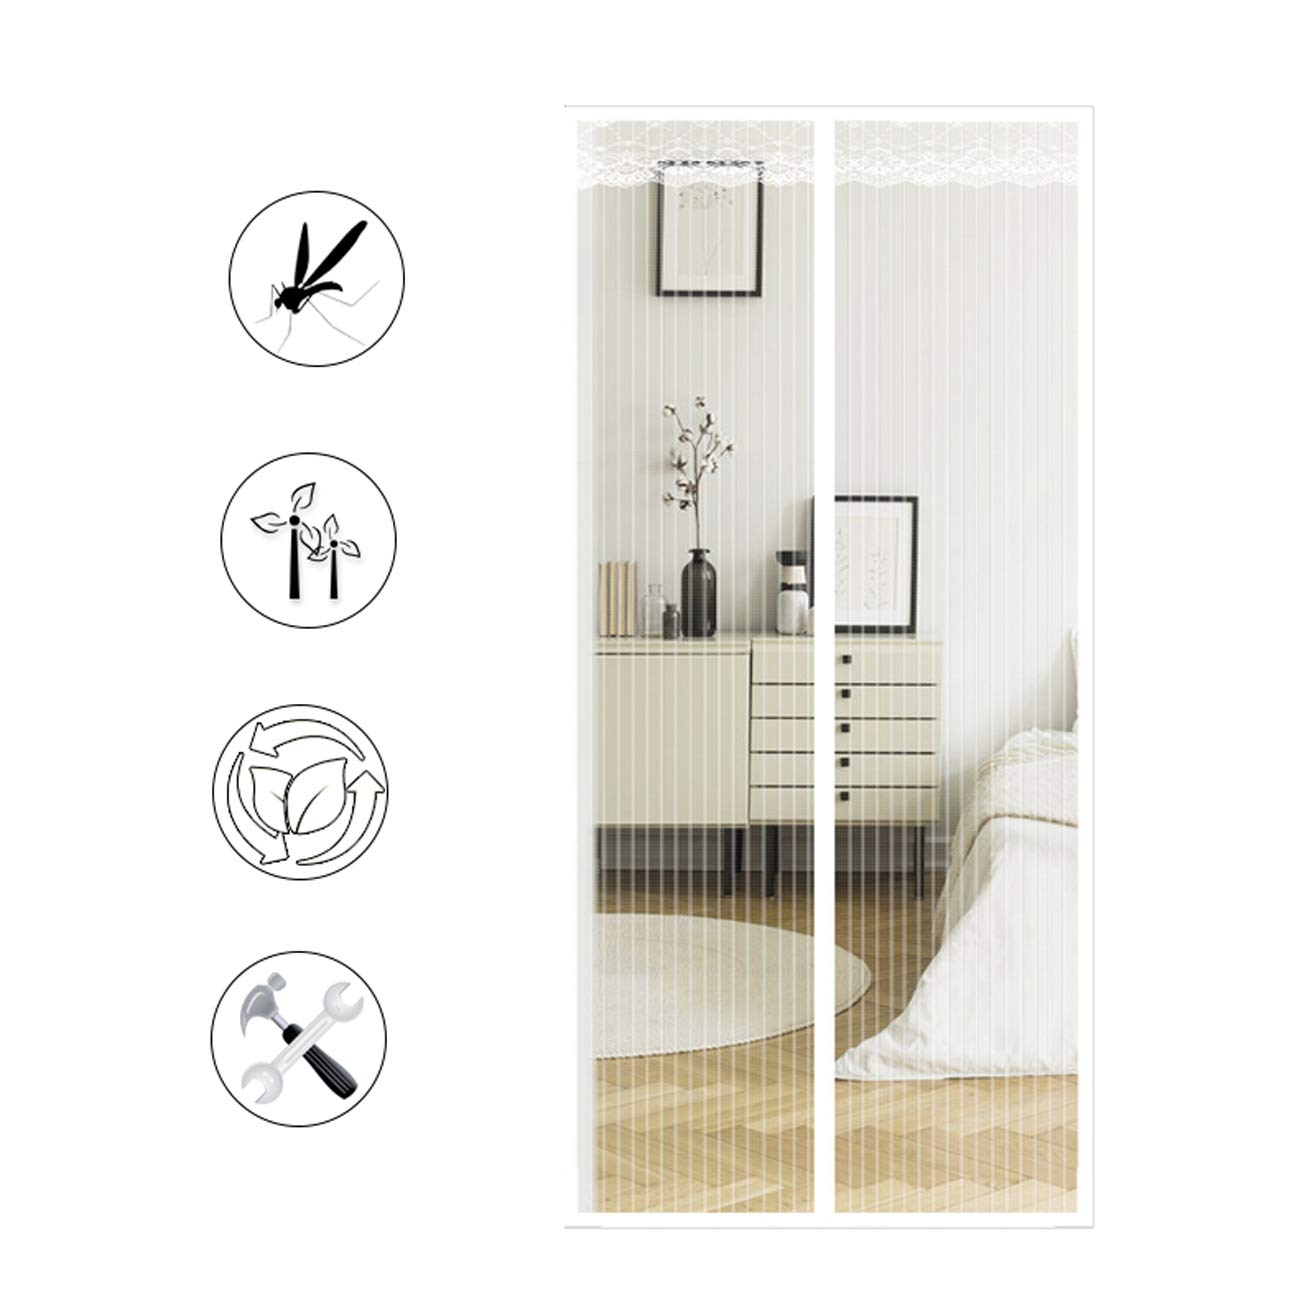 130x200cm(51x79inch) Magnetic Screen Door Mesh Curtain White, Mesh Door Screen with Magnet Fly Mosquitos Bug Insect Screen for Sliding French Patio Door,Full Frame Hands Free,Pet Friendly,130x200cm(51x79inch)